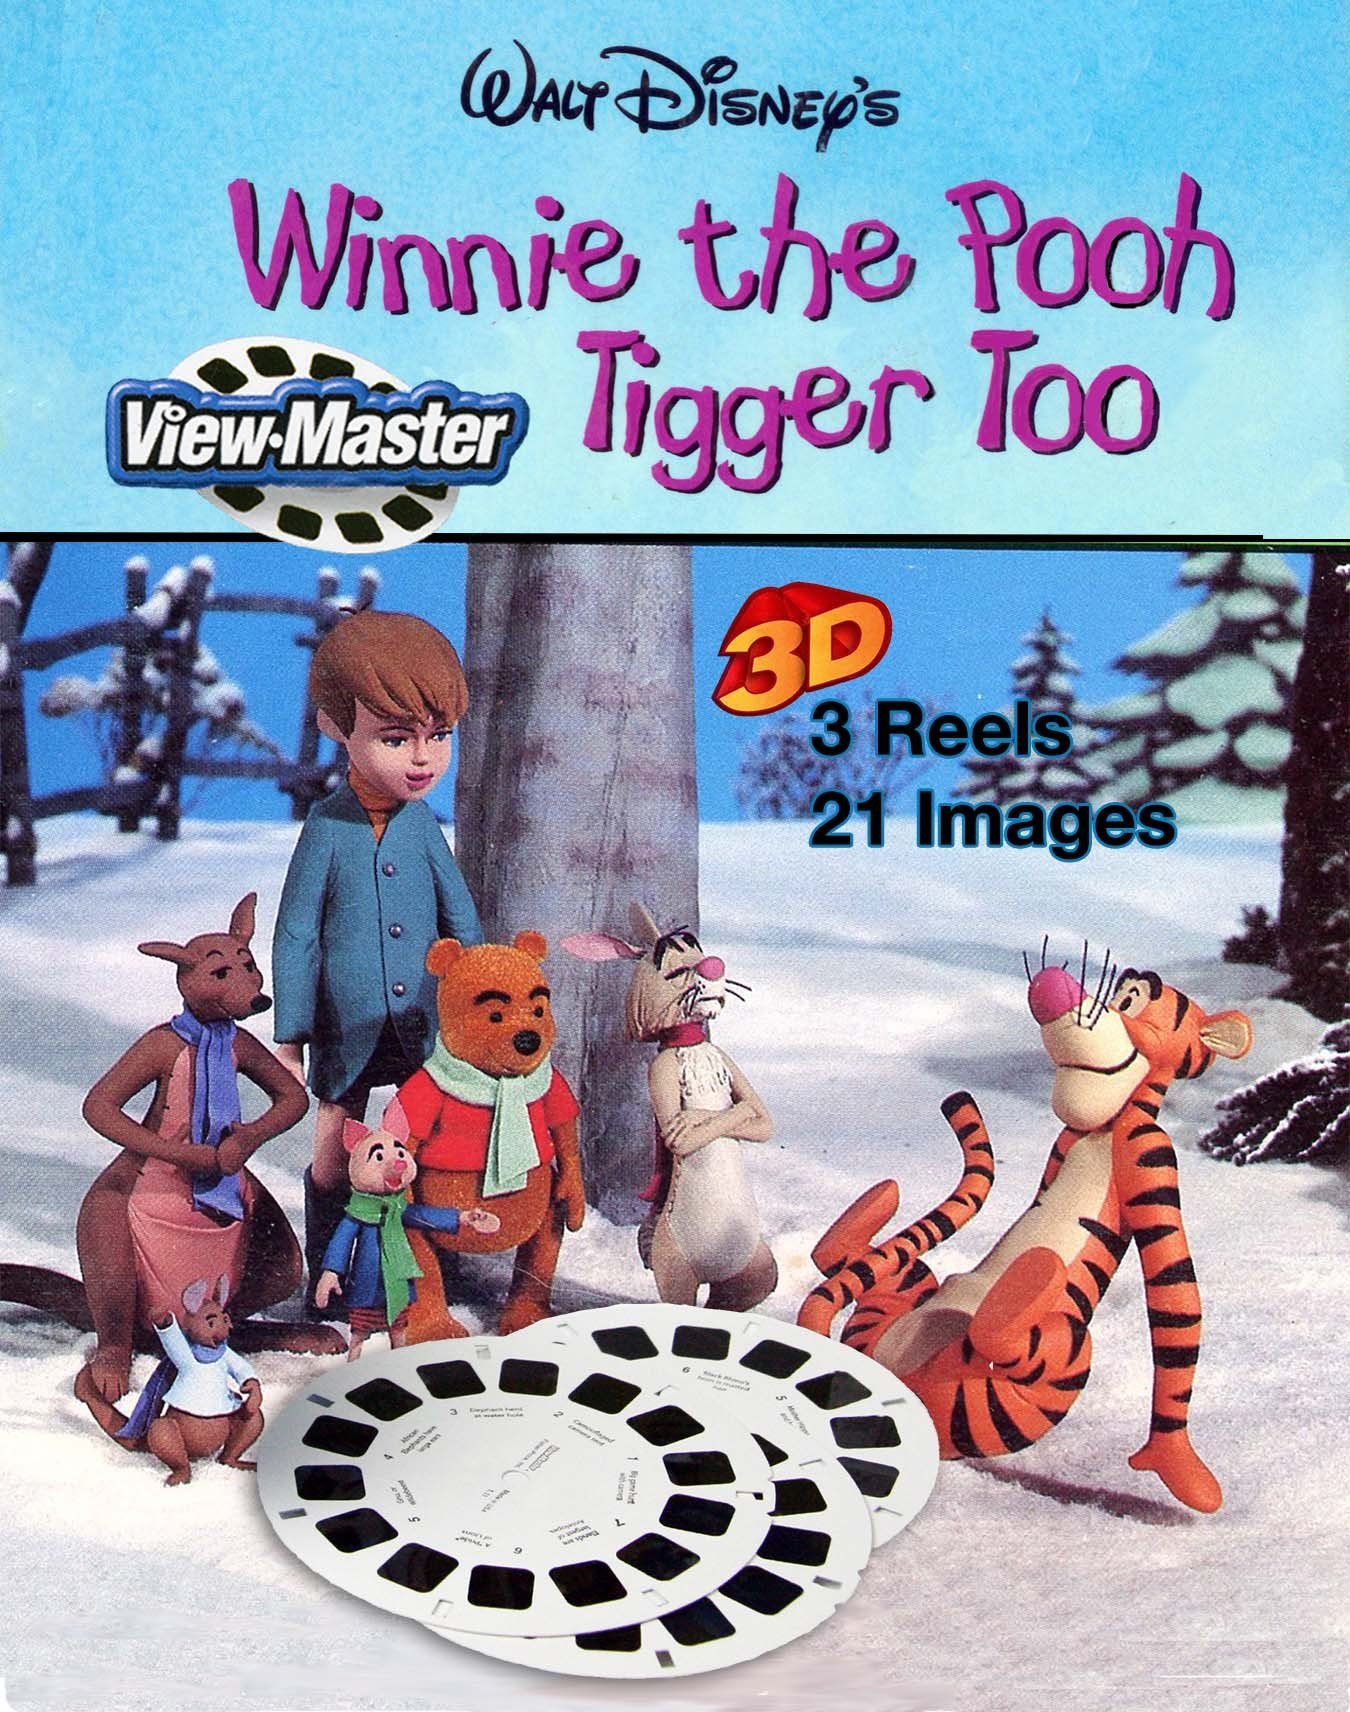 View-Master Classic 3Reel Set Winnie the Pooh and Tigger too by View Master